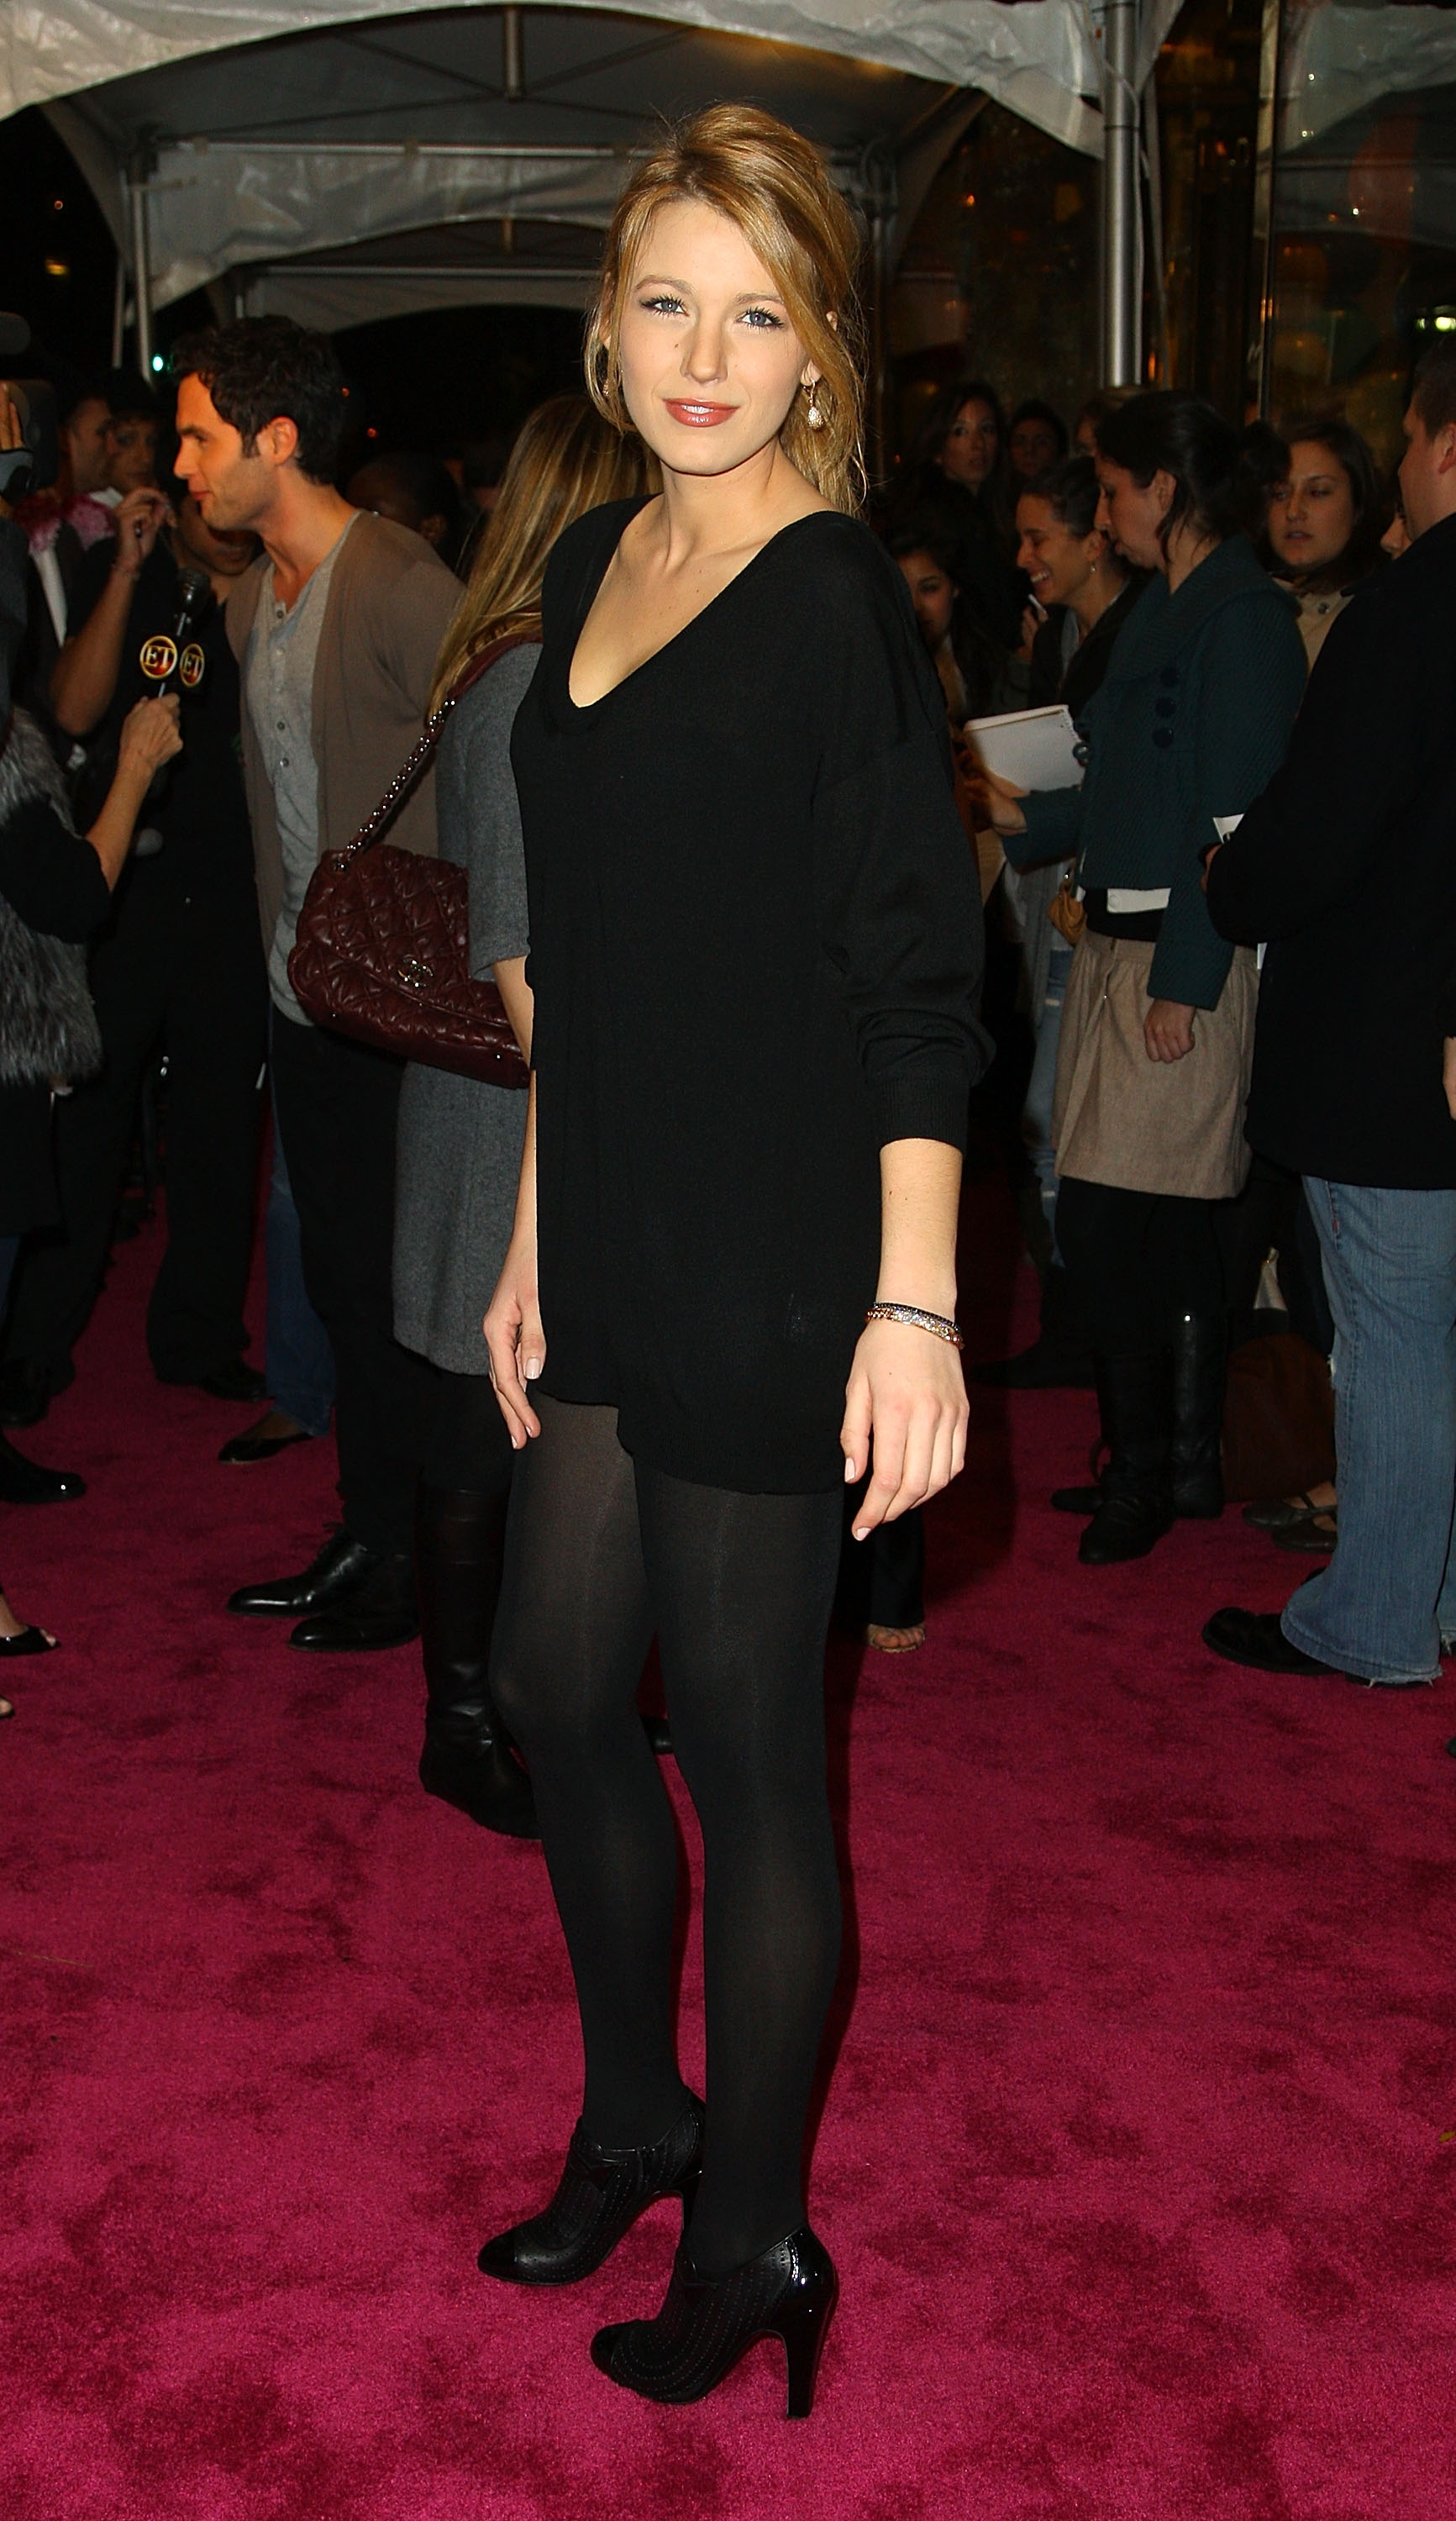 58840_Celebutopia-Blake_Lively-Opening_party_for_Juicy_Couture3s_5th_Avenue_flagship_store-03_122_991lo.jpg